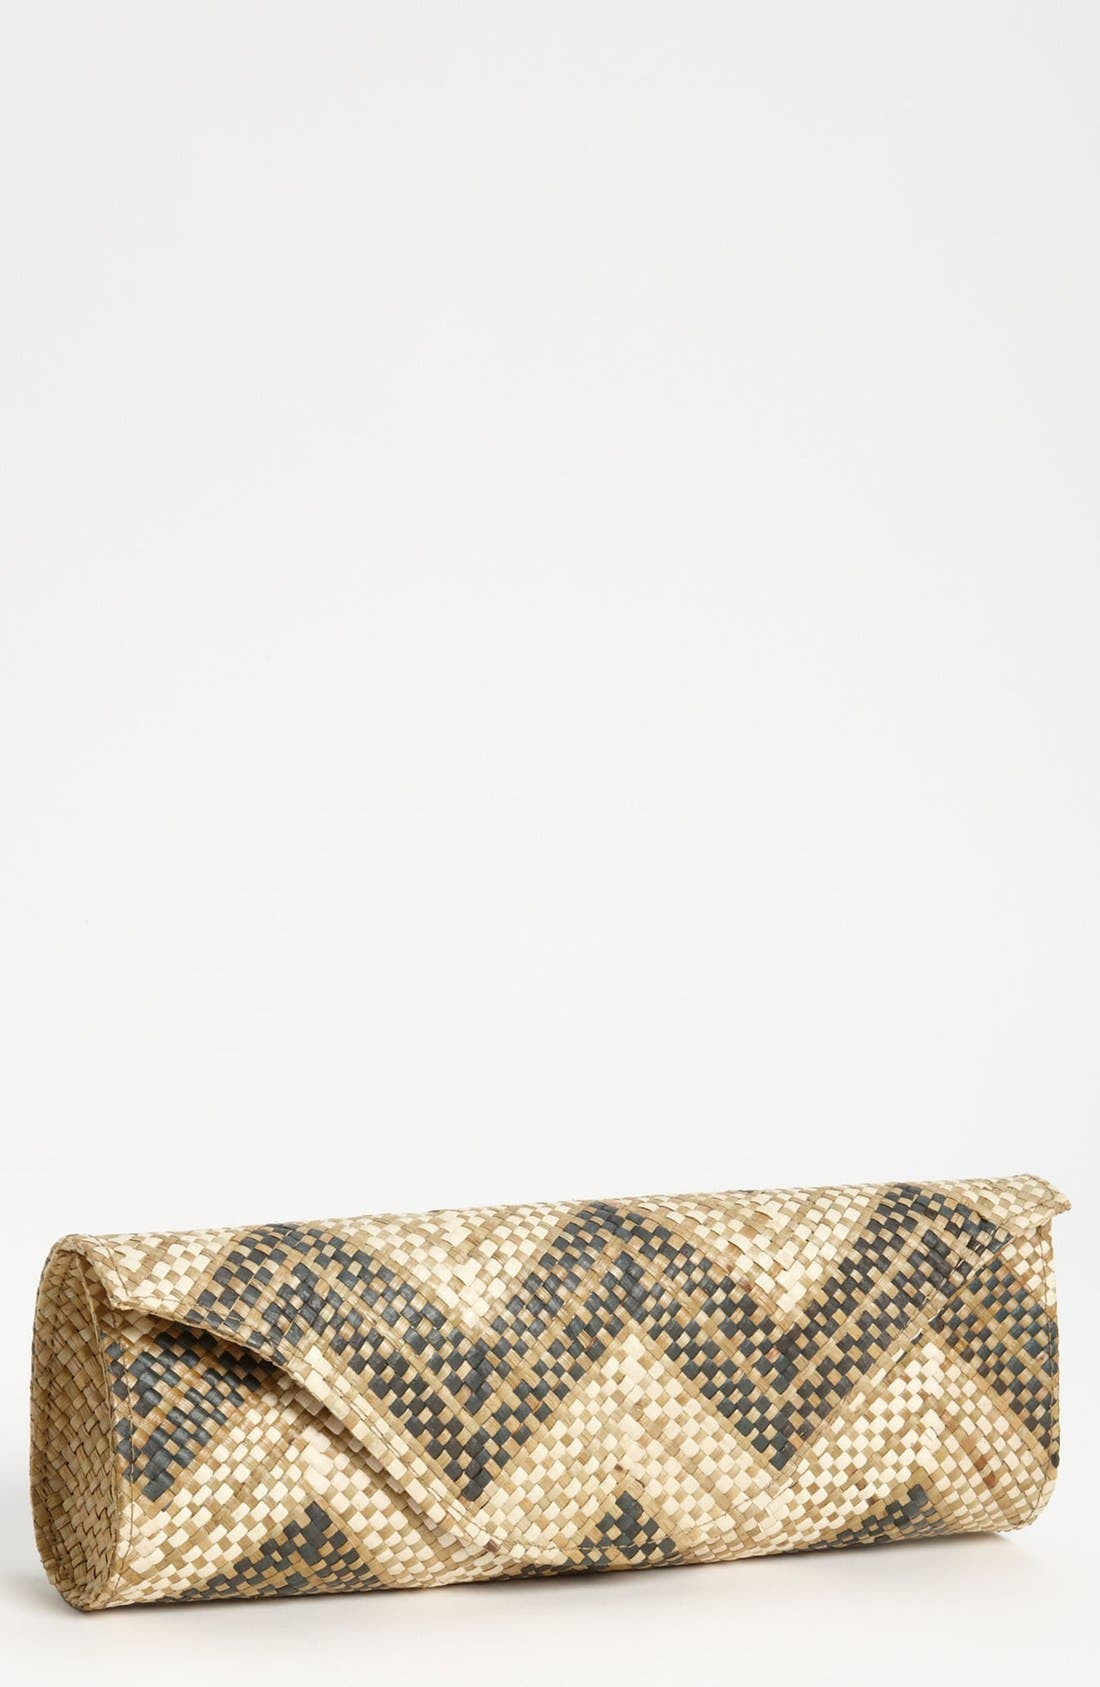 Alternate Image 1 Selected - BANAGO 'Mayumi - Medium' Clutch